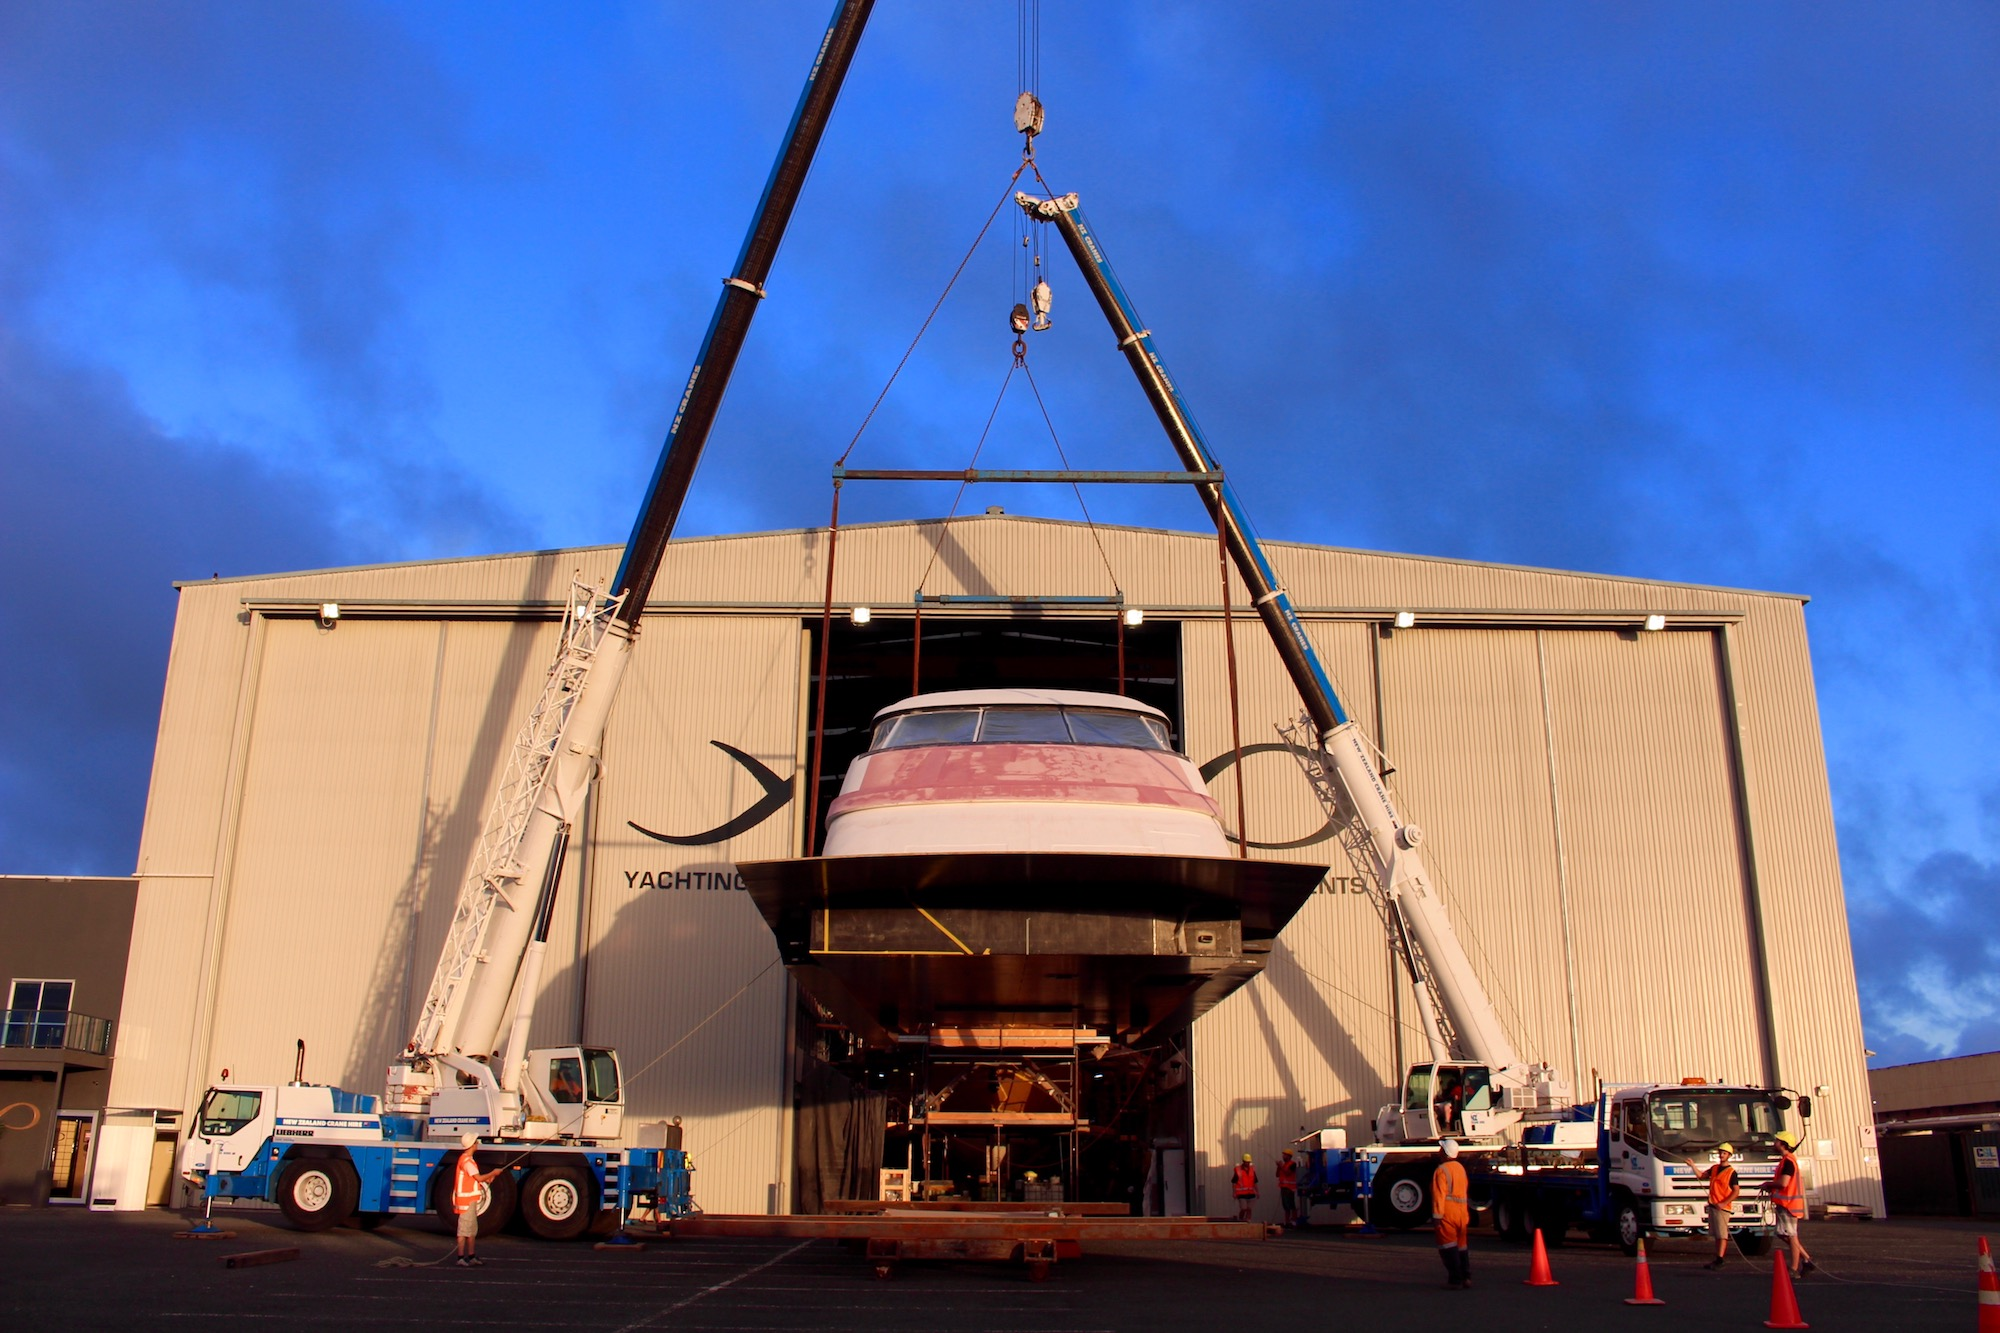 Hull 1015 superstructure is lifted on to the hull – image Paige Cook